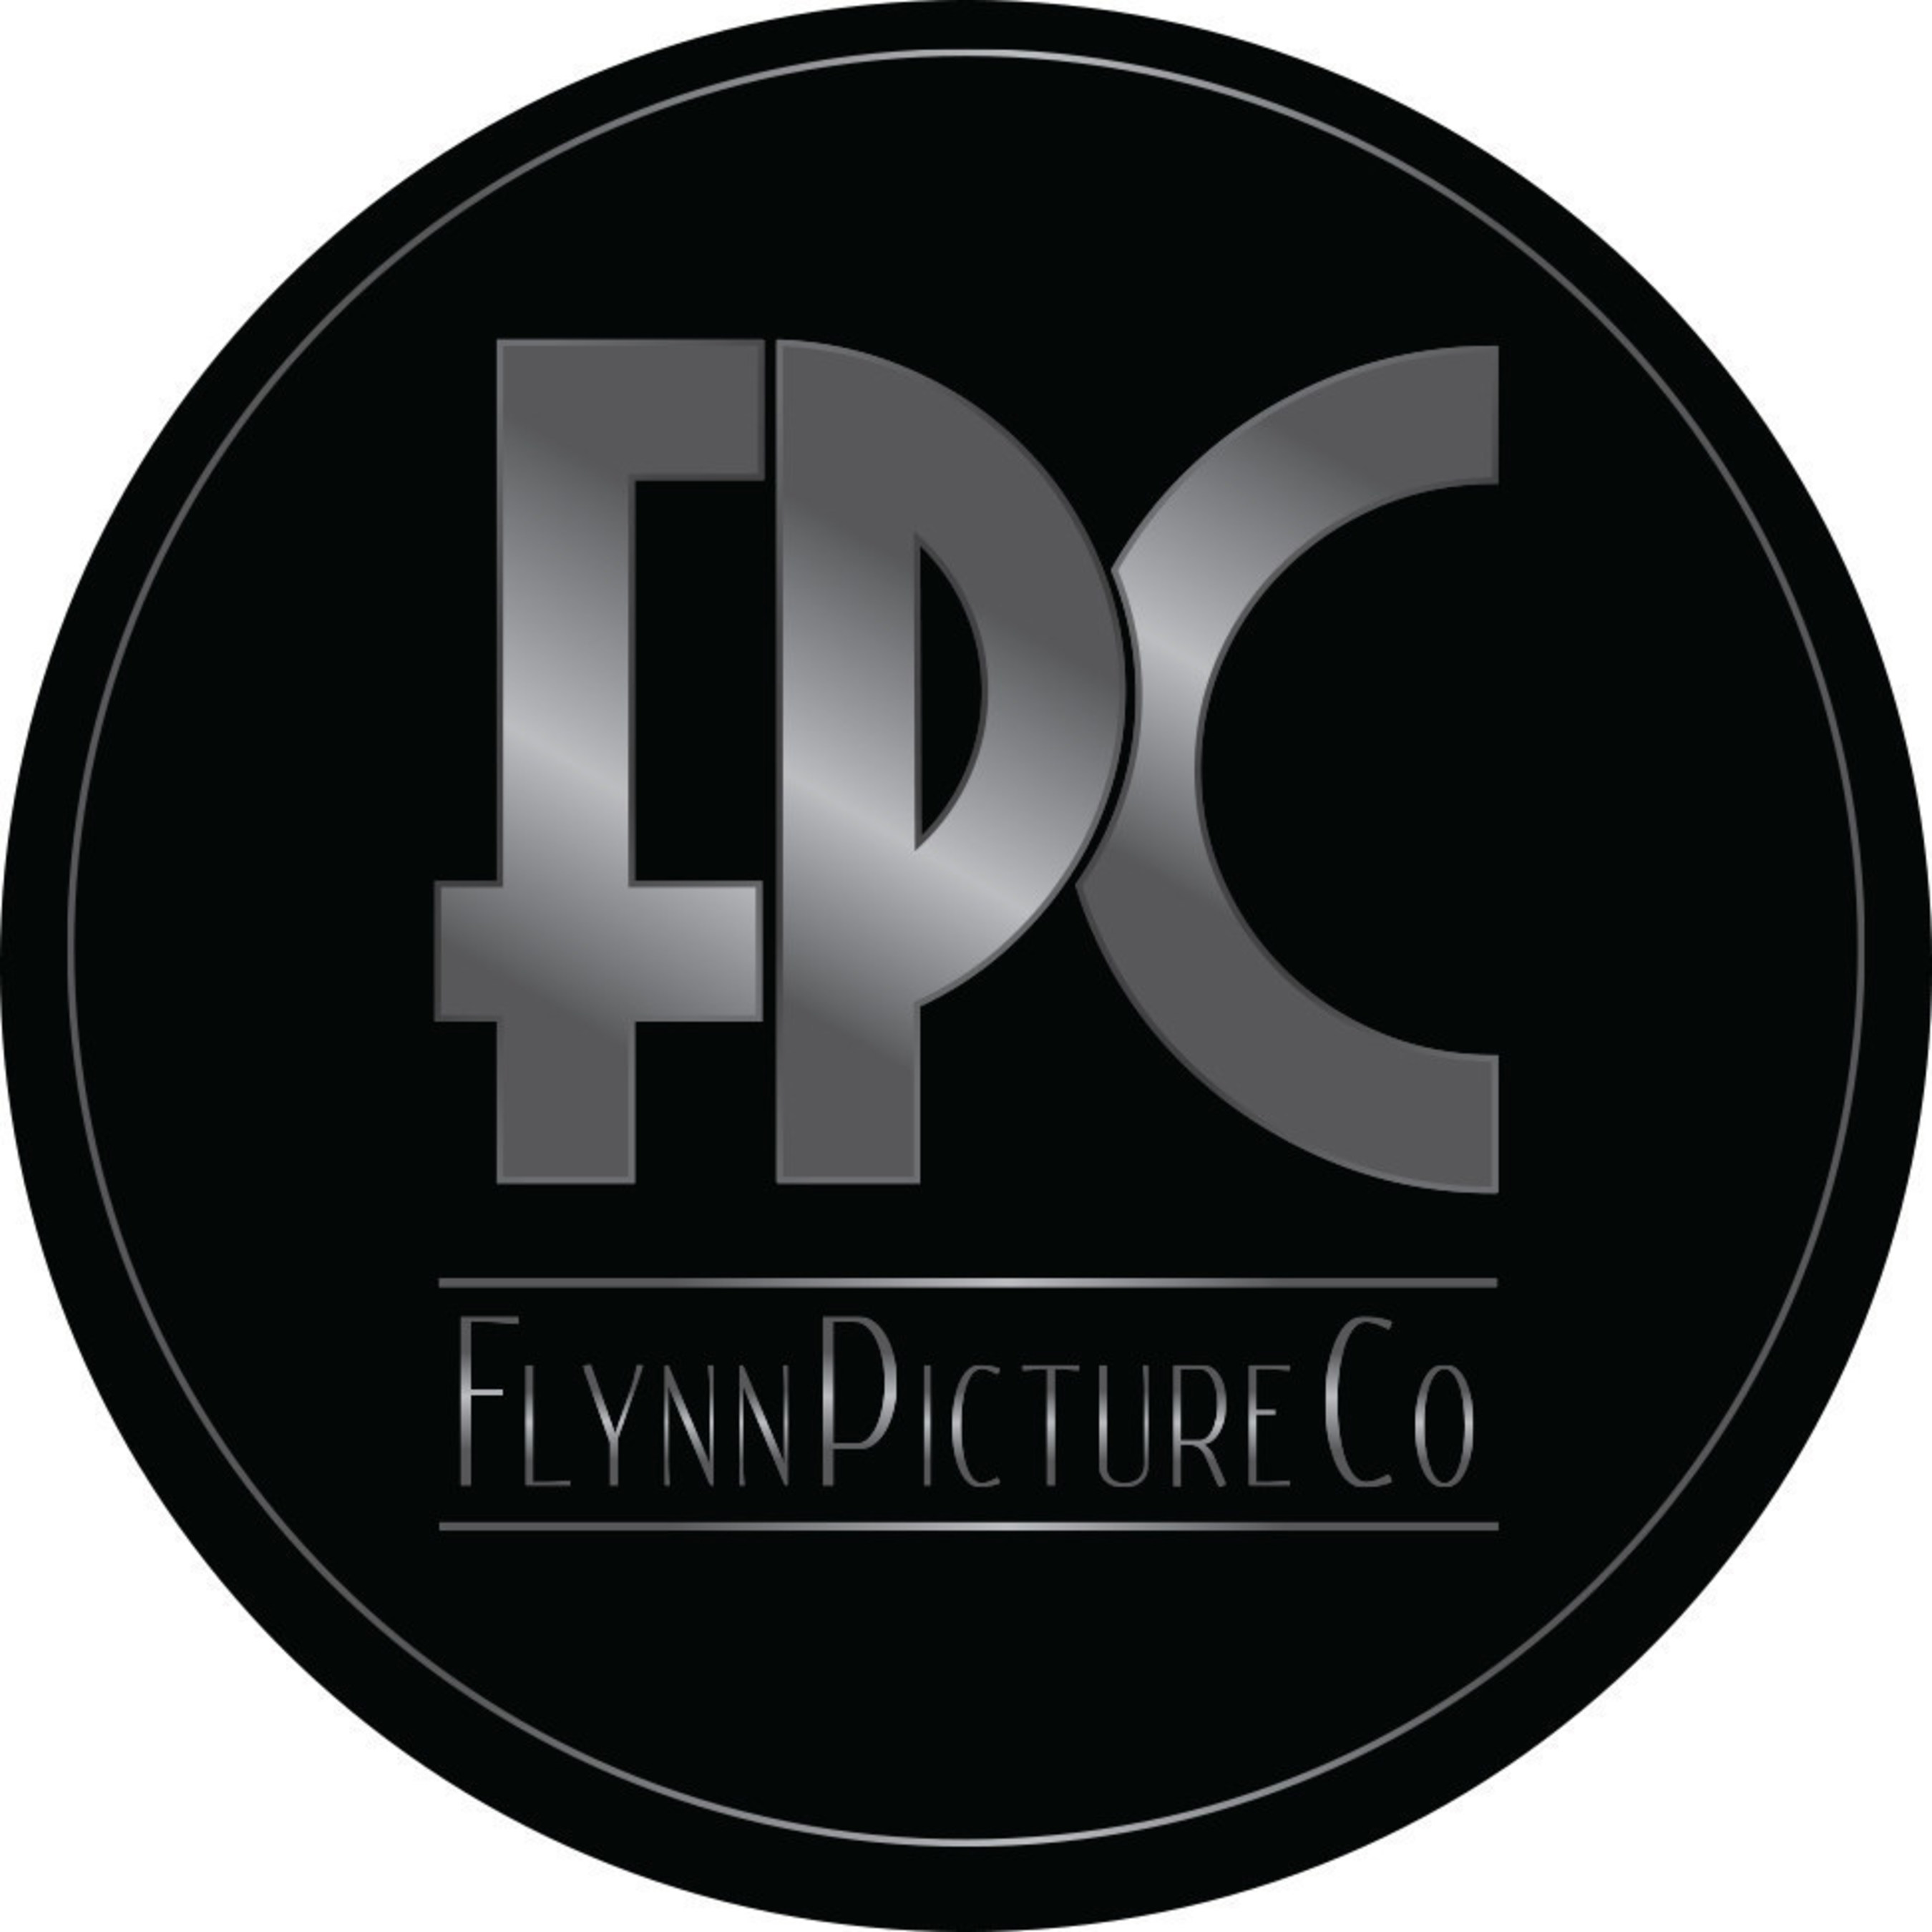 FlynnPictureCo.